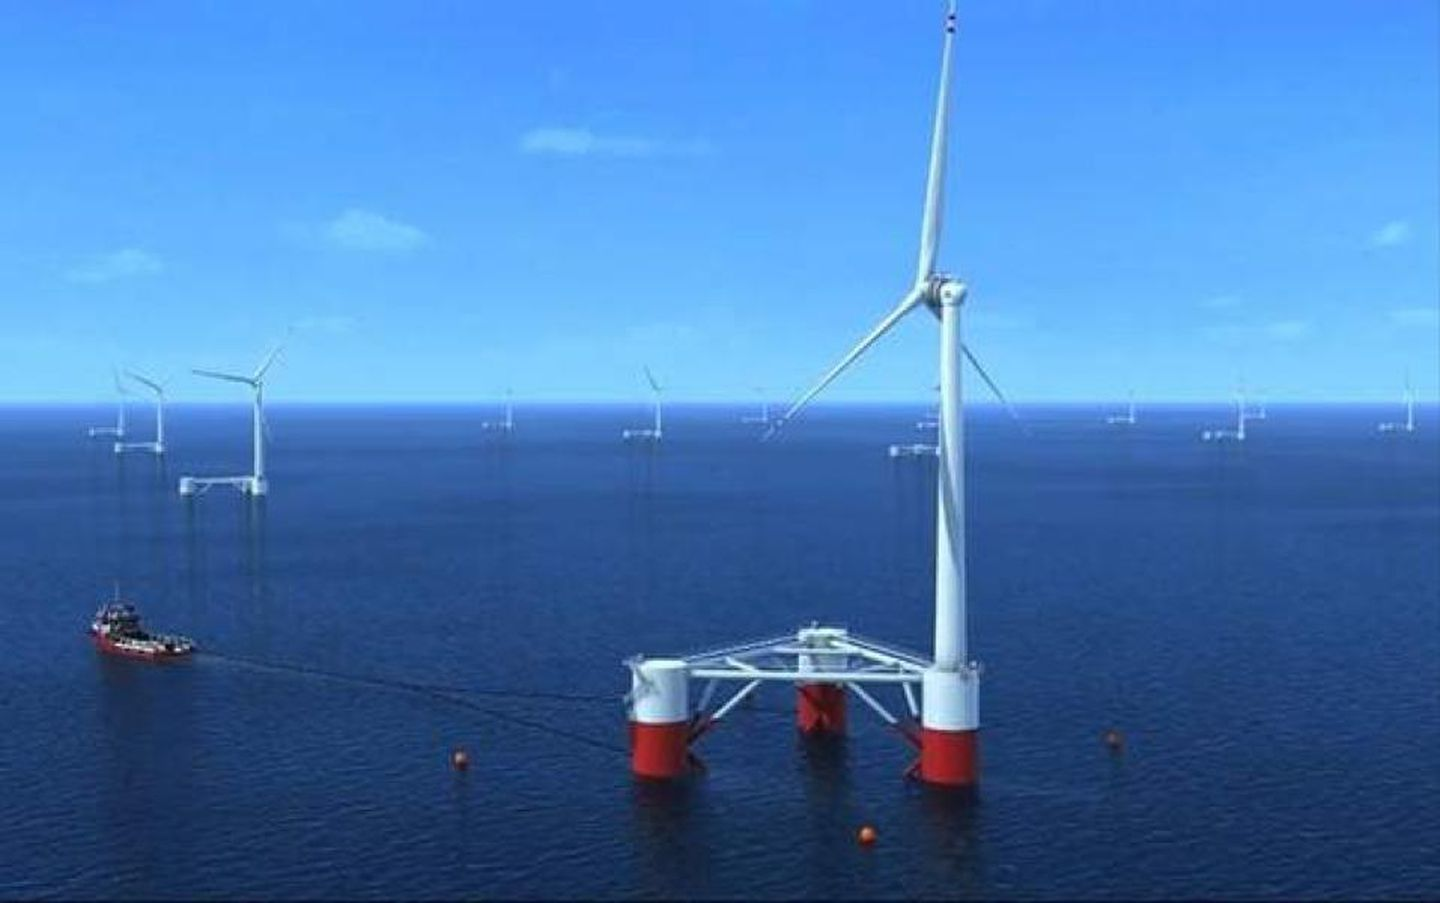 Jiangsu Strong Wind receives order from Timas Oceanstar for FPU